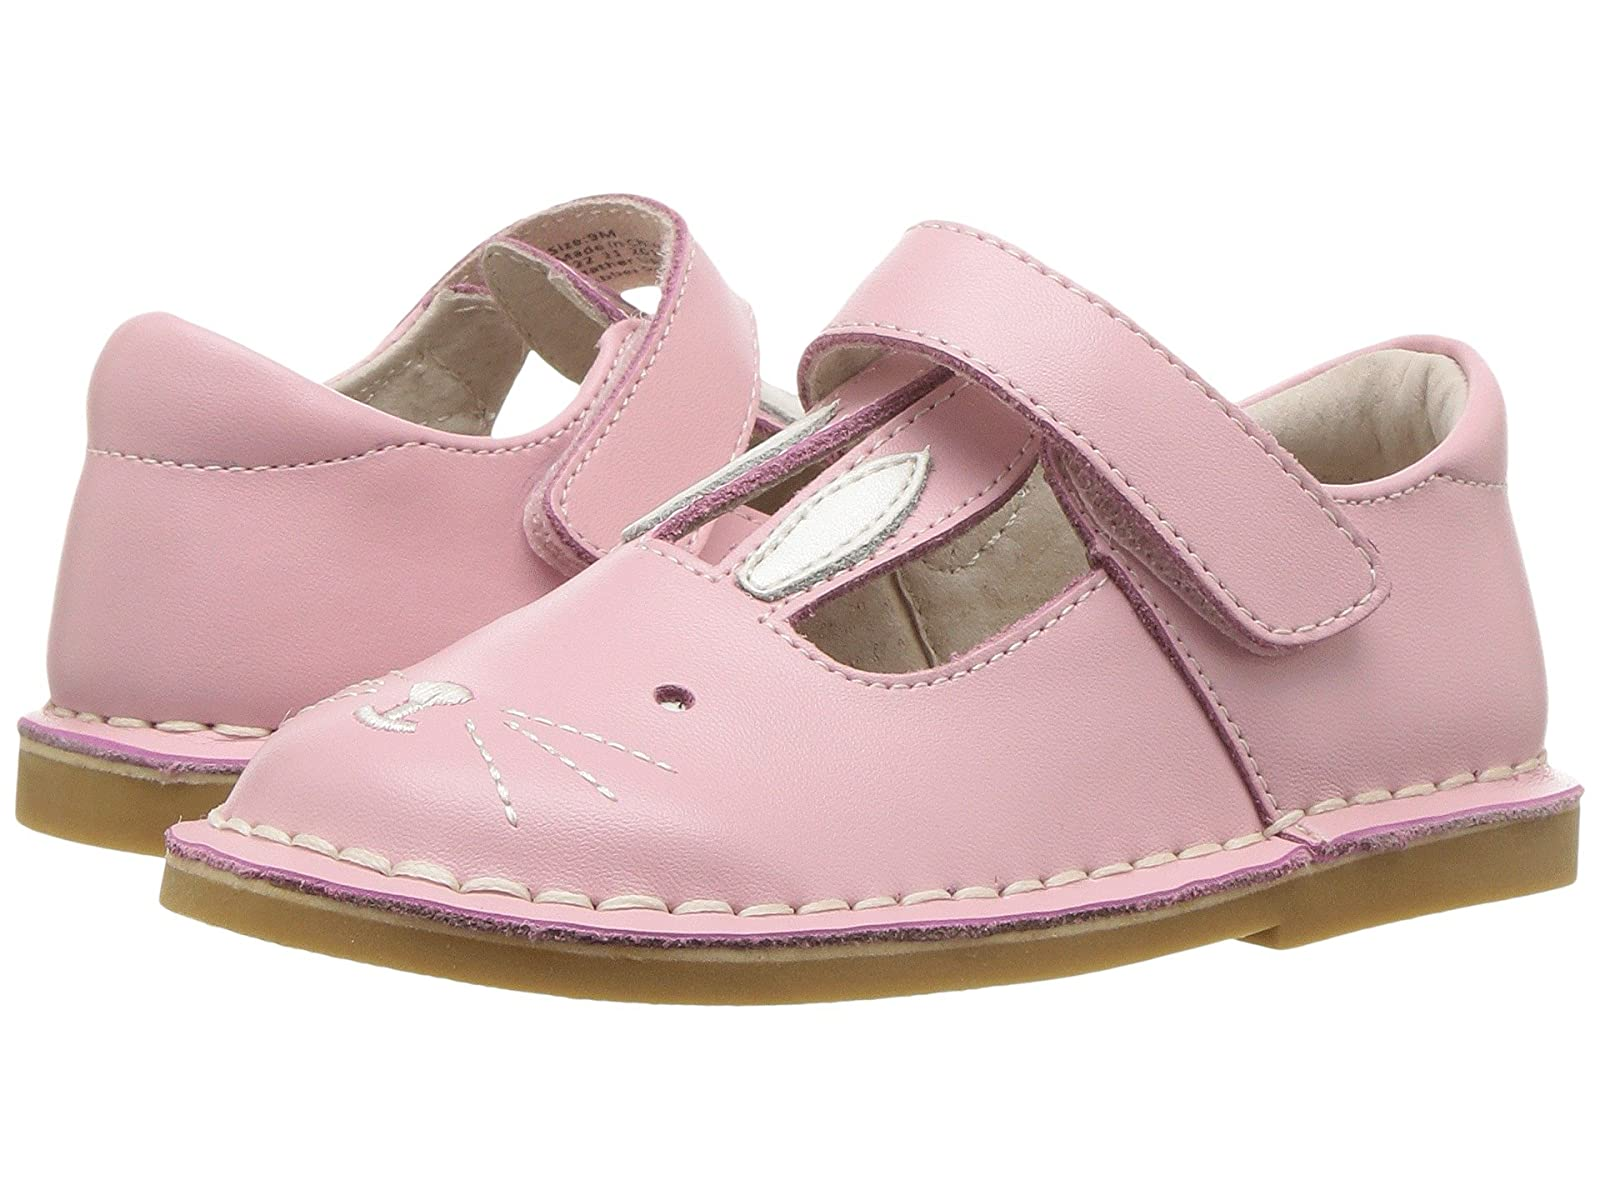 Livie & Luca Molly (Toddler/Little Kid)Atmospheric grades have affordable shoes